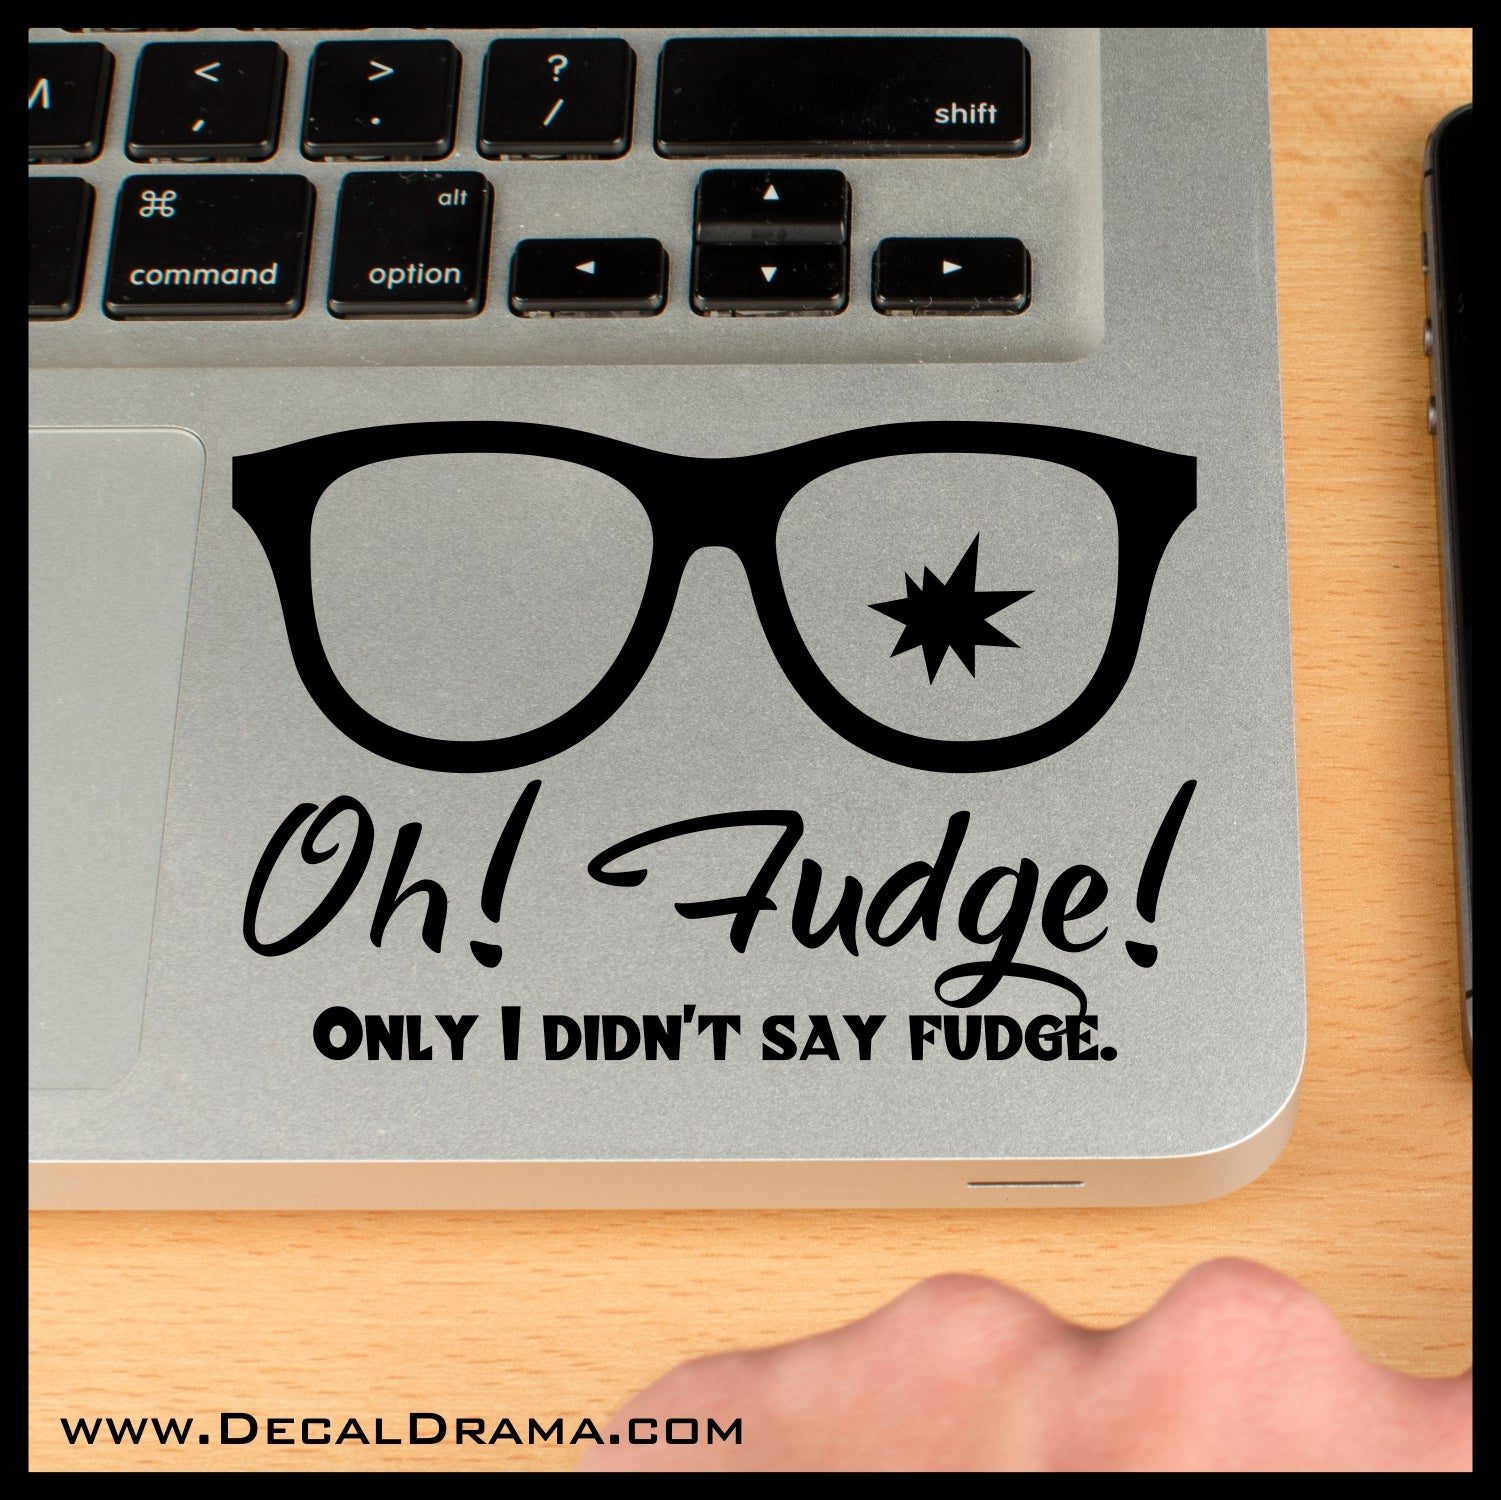 Oh! Fudge! Only I Didn't Say Fudge, A Christmas Story-inspired Fan Art Vinyl Car/Laptop Decal